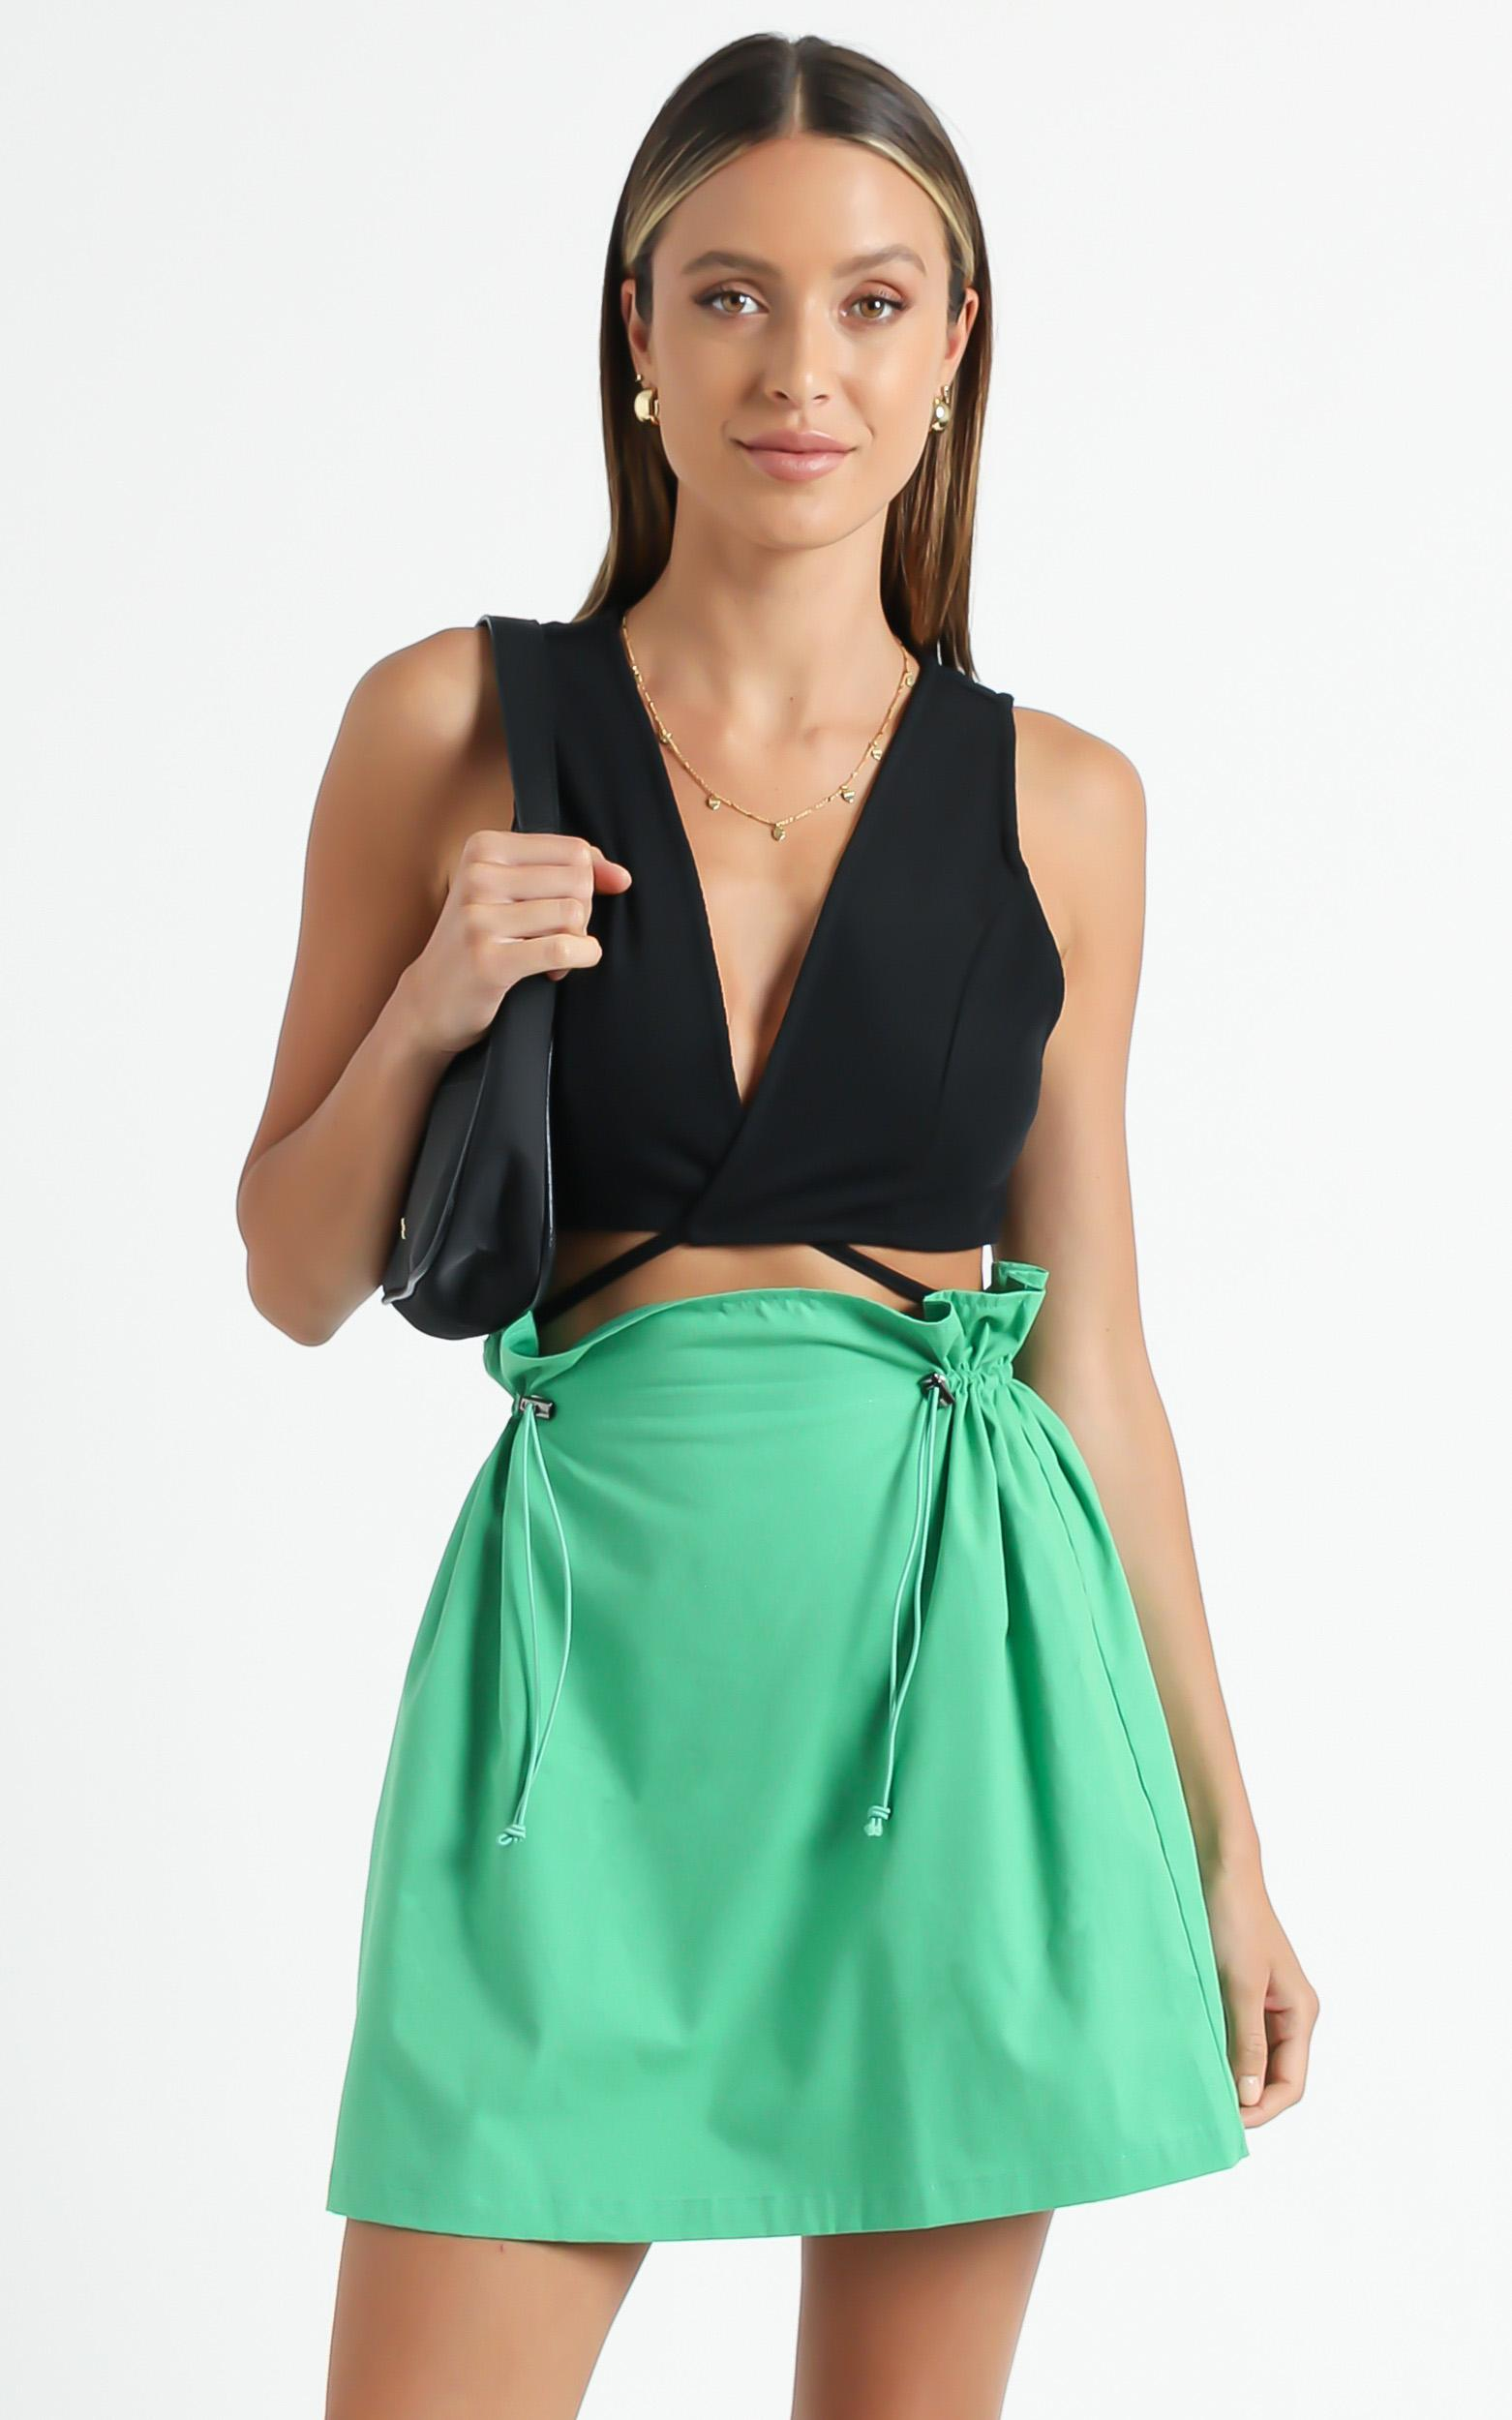 Kinaros Skirt in Green - 6 (XS), Green, hi-res image number null